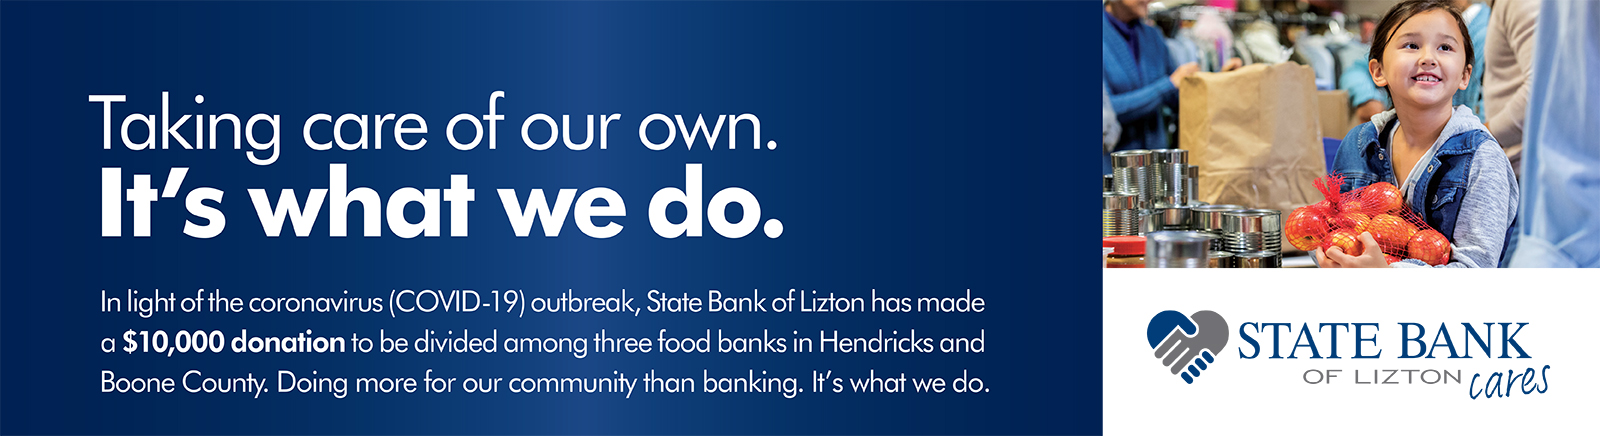 SBL is giving $10,000 to local food banks in Hendricks and Boone Counties